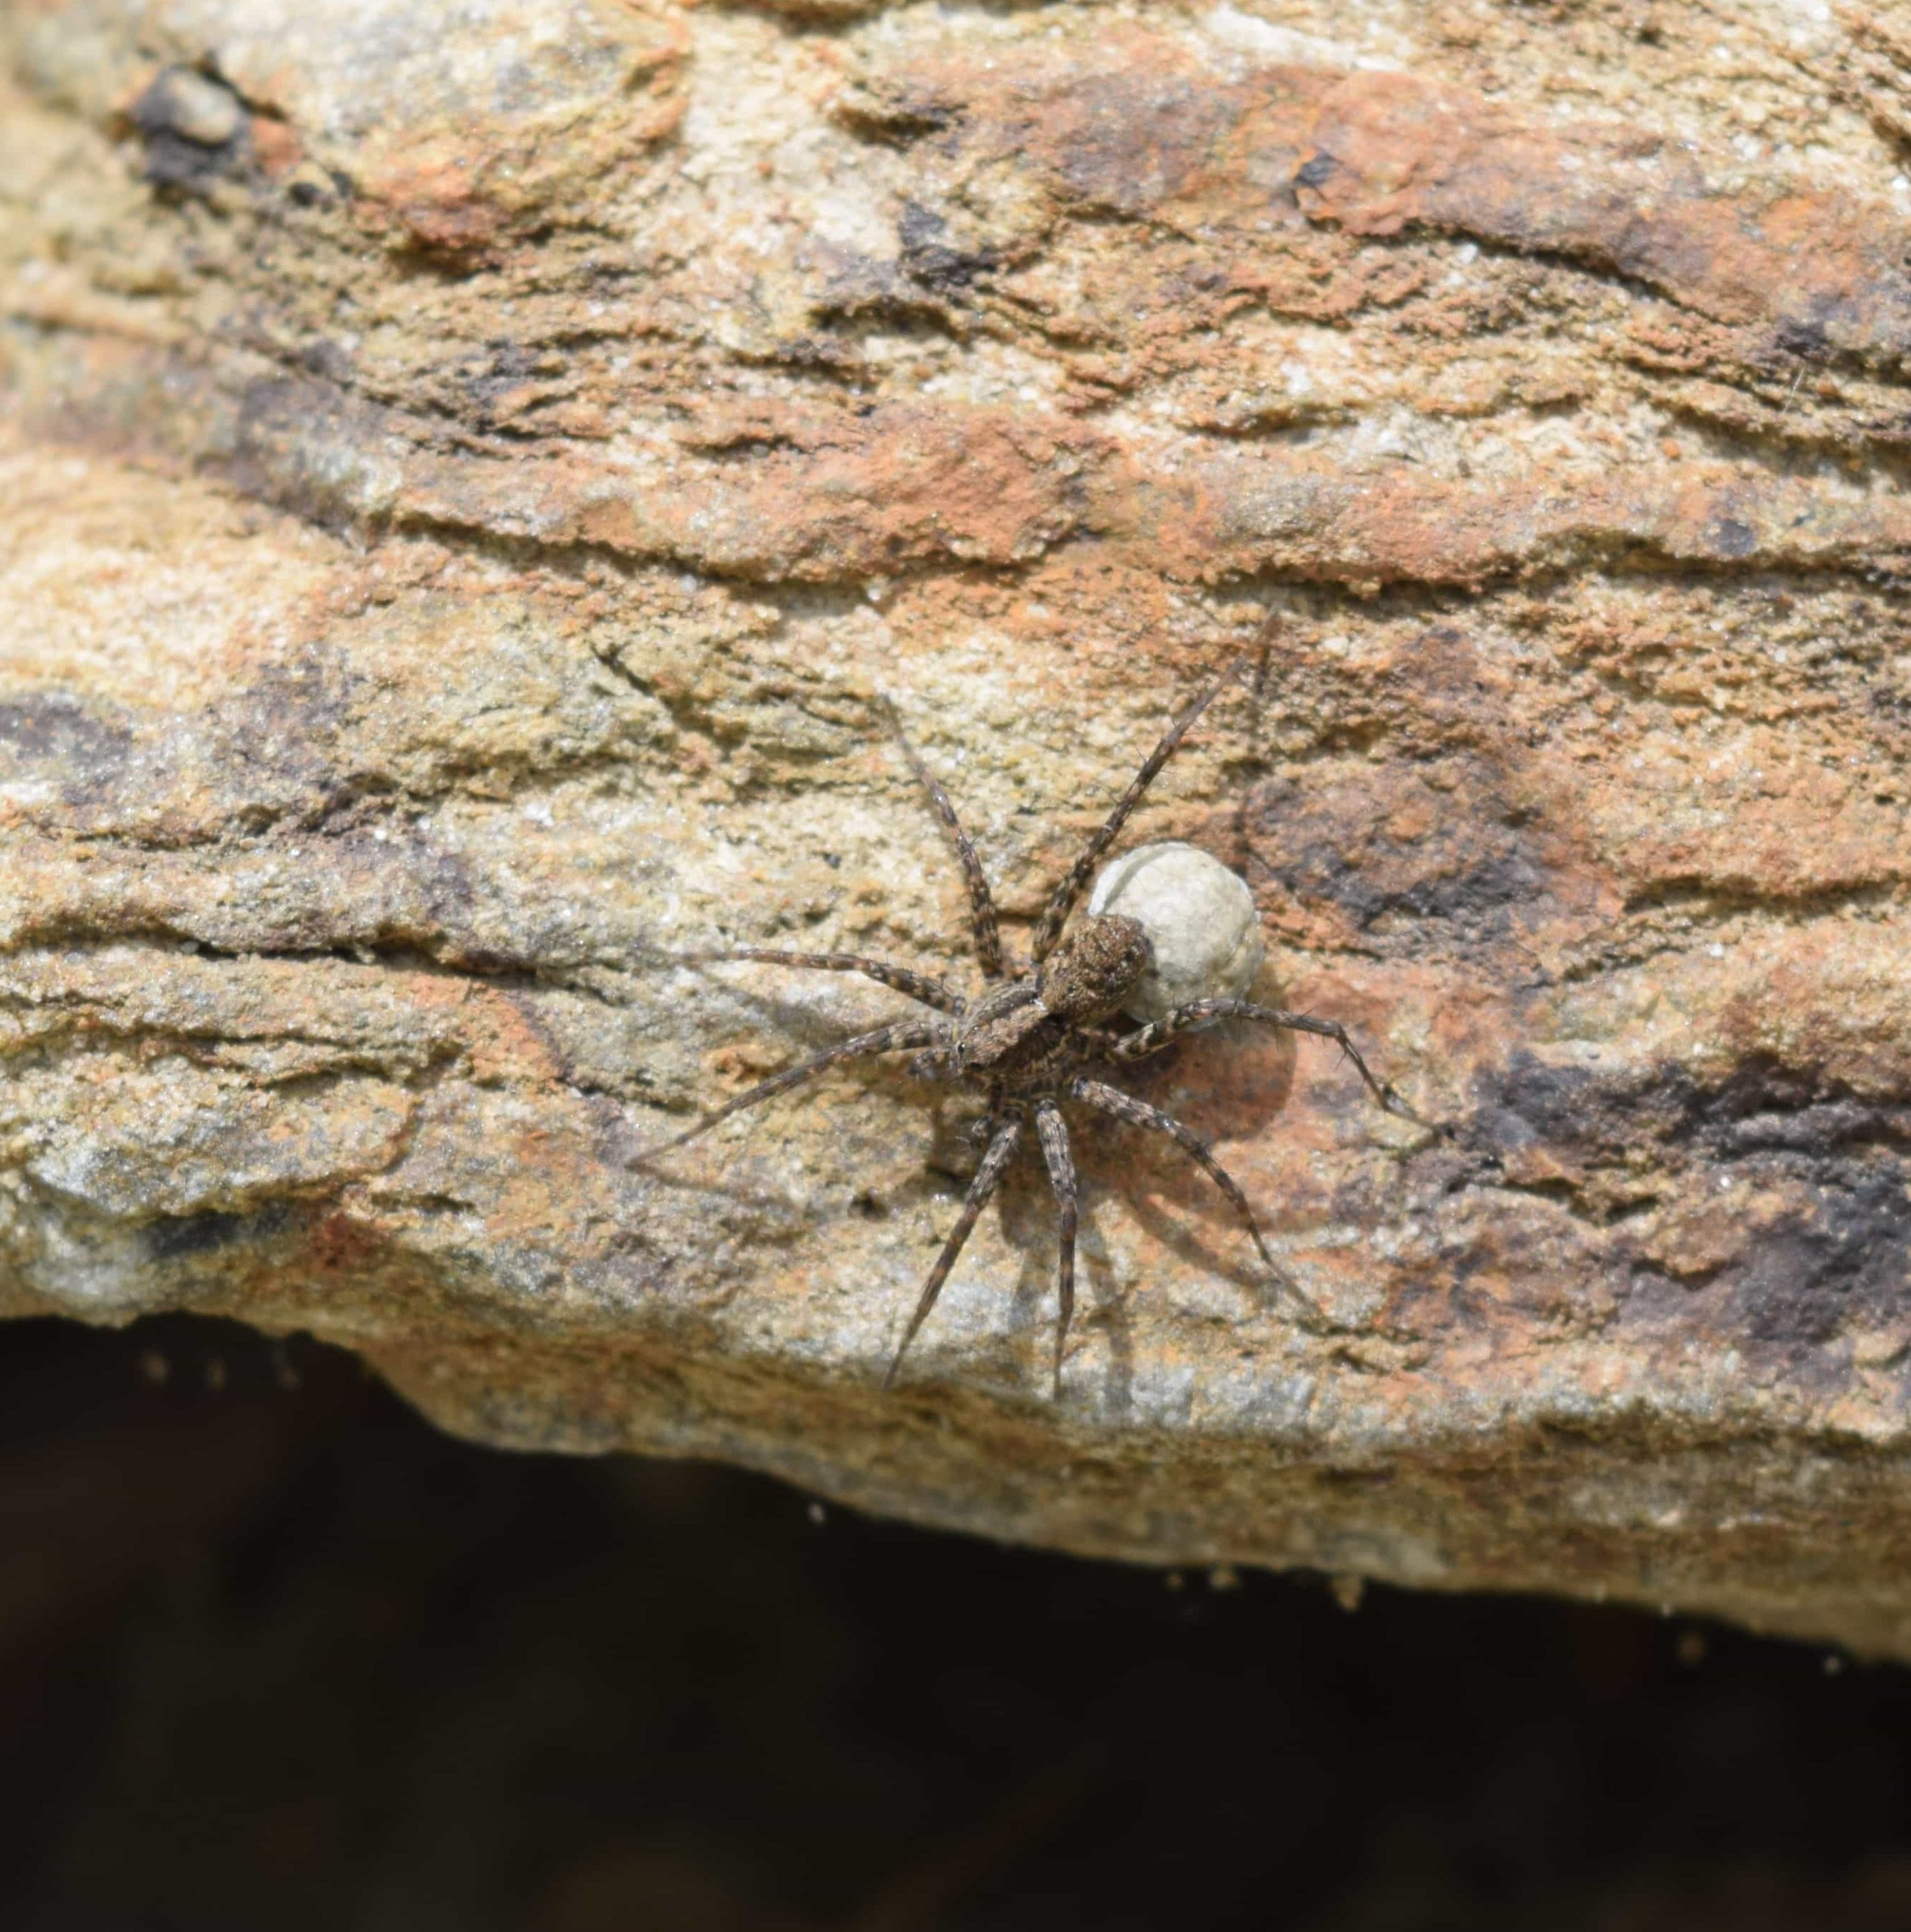 Picture of Pardosa (Thin-legged Wolf Spiders) - Female - Dorsal,Egg sacs